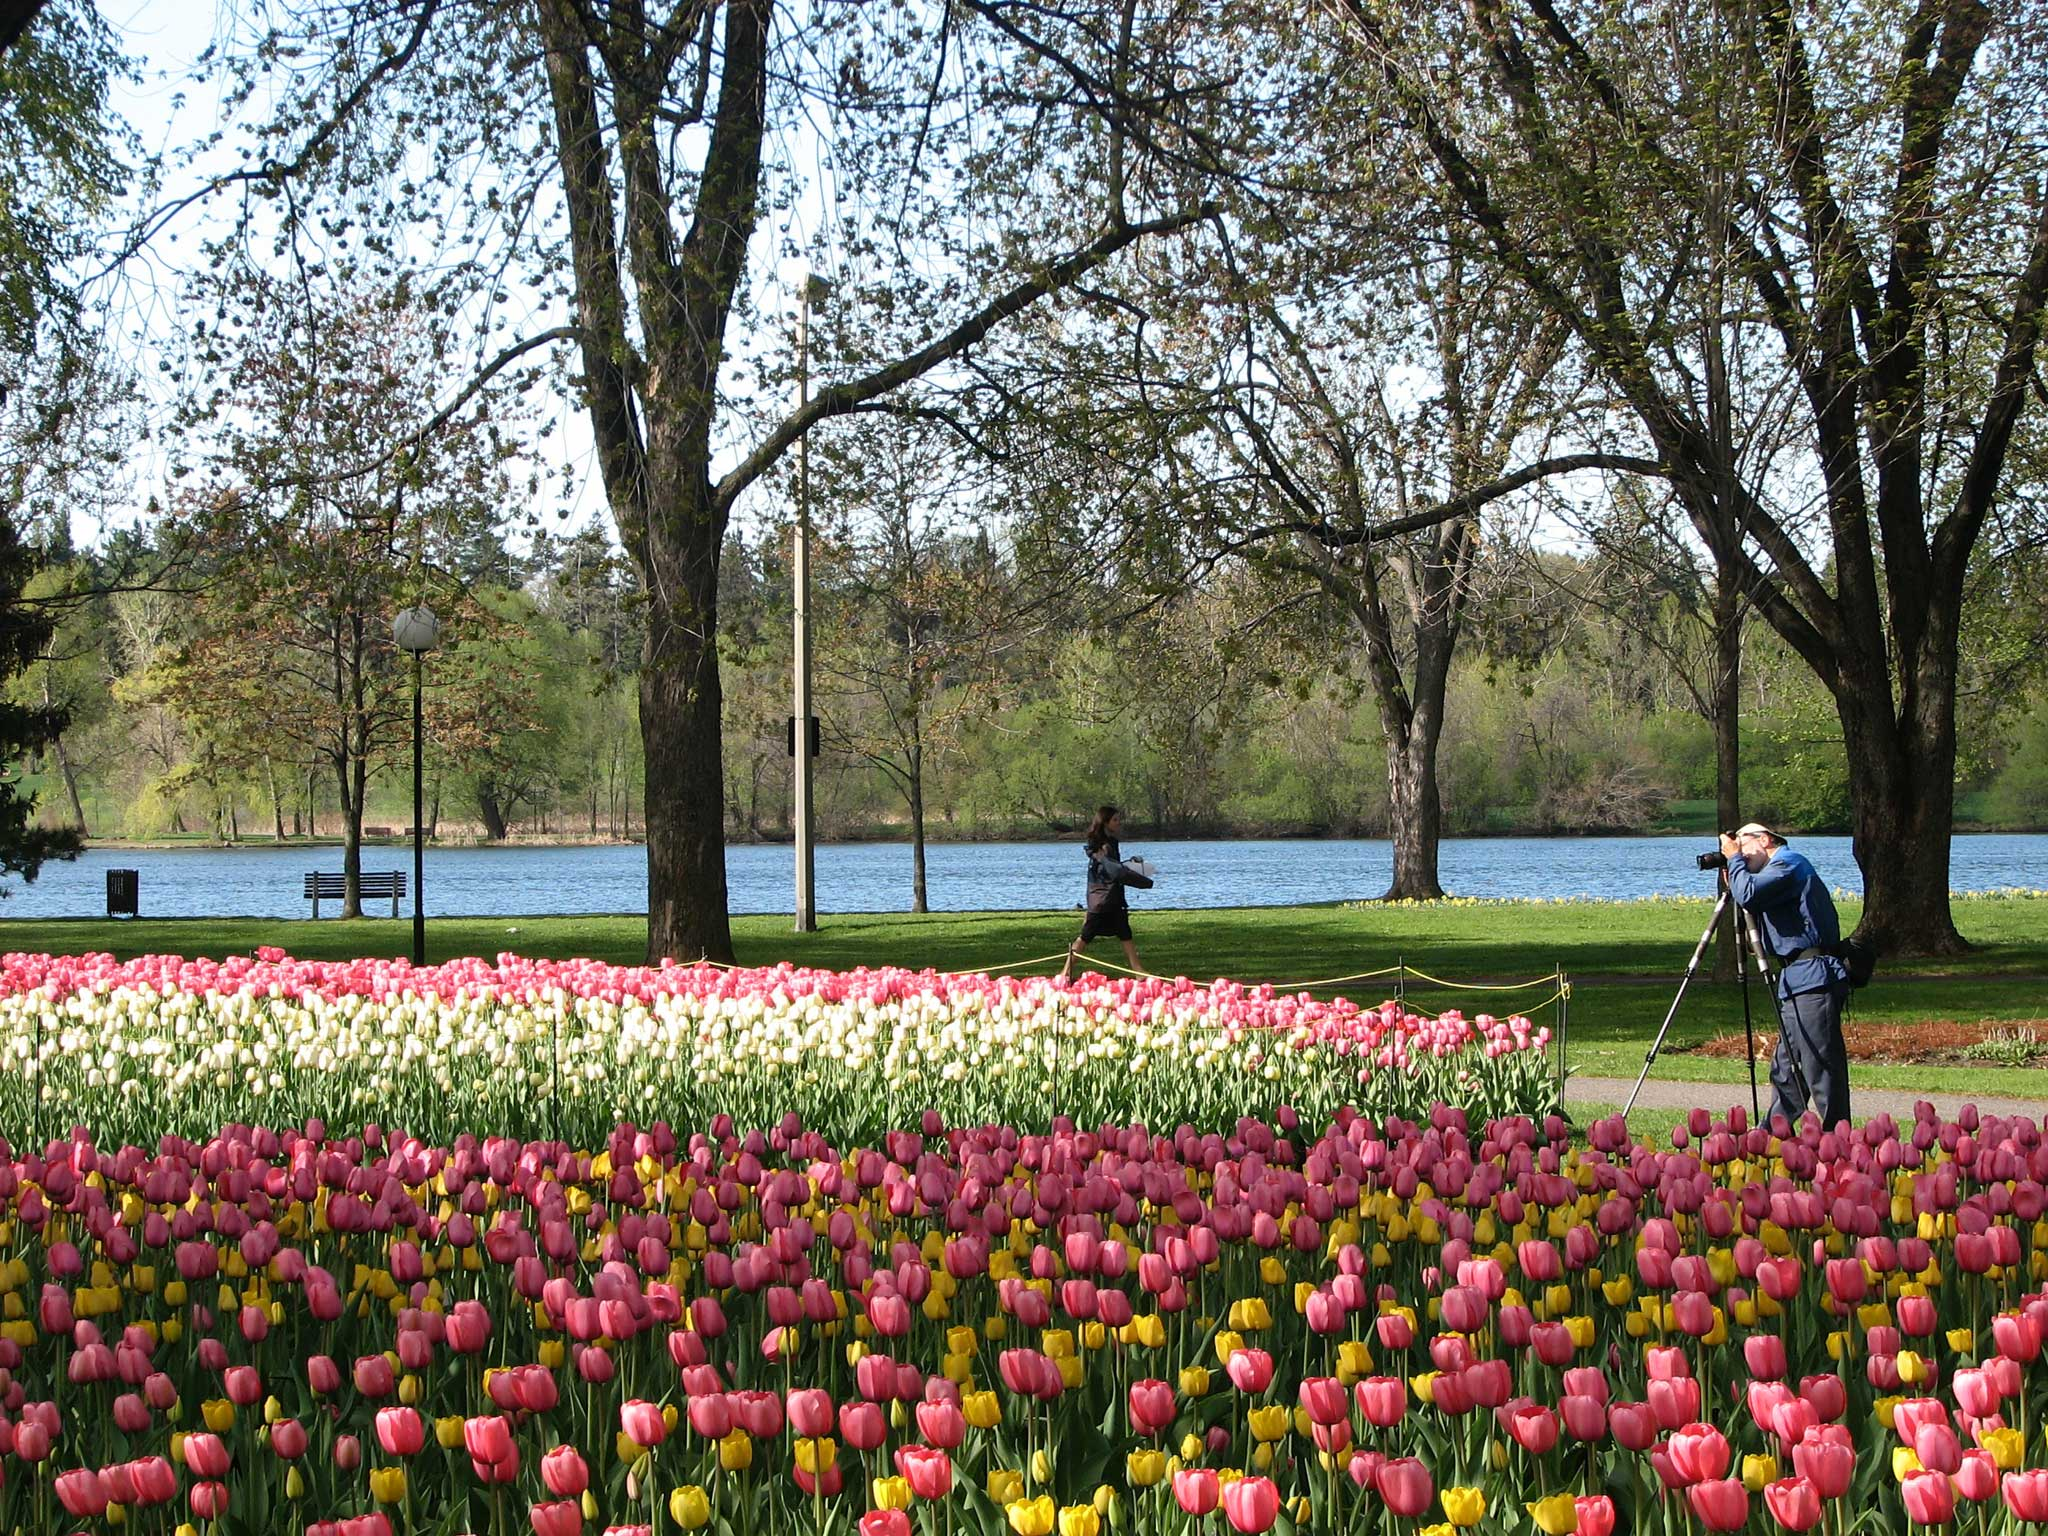 Dow's Lake Tulips wallpaper